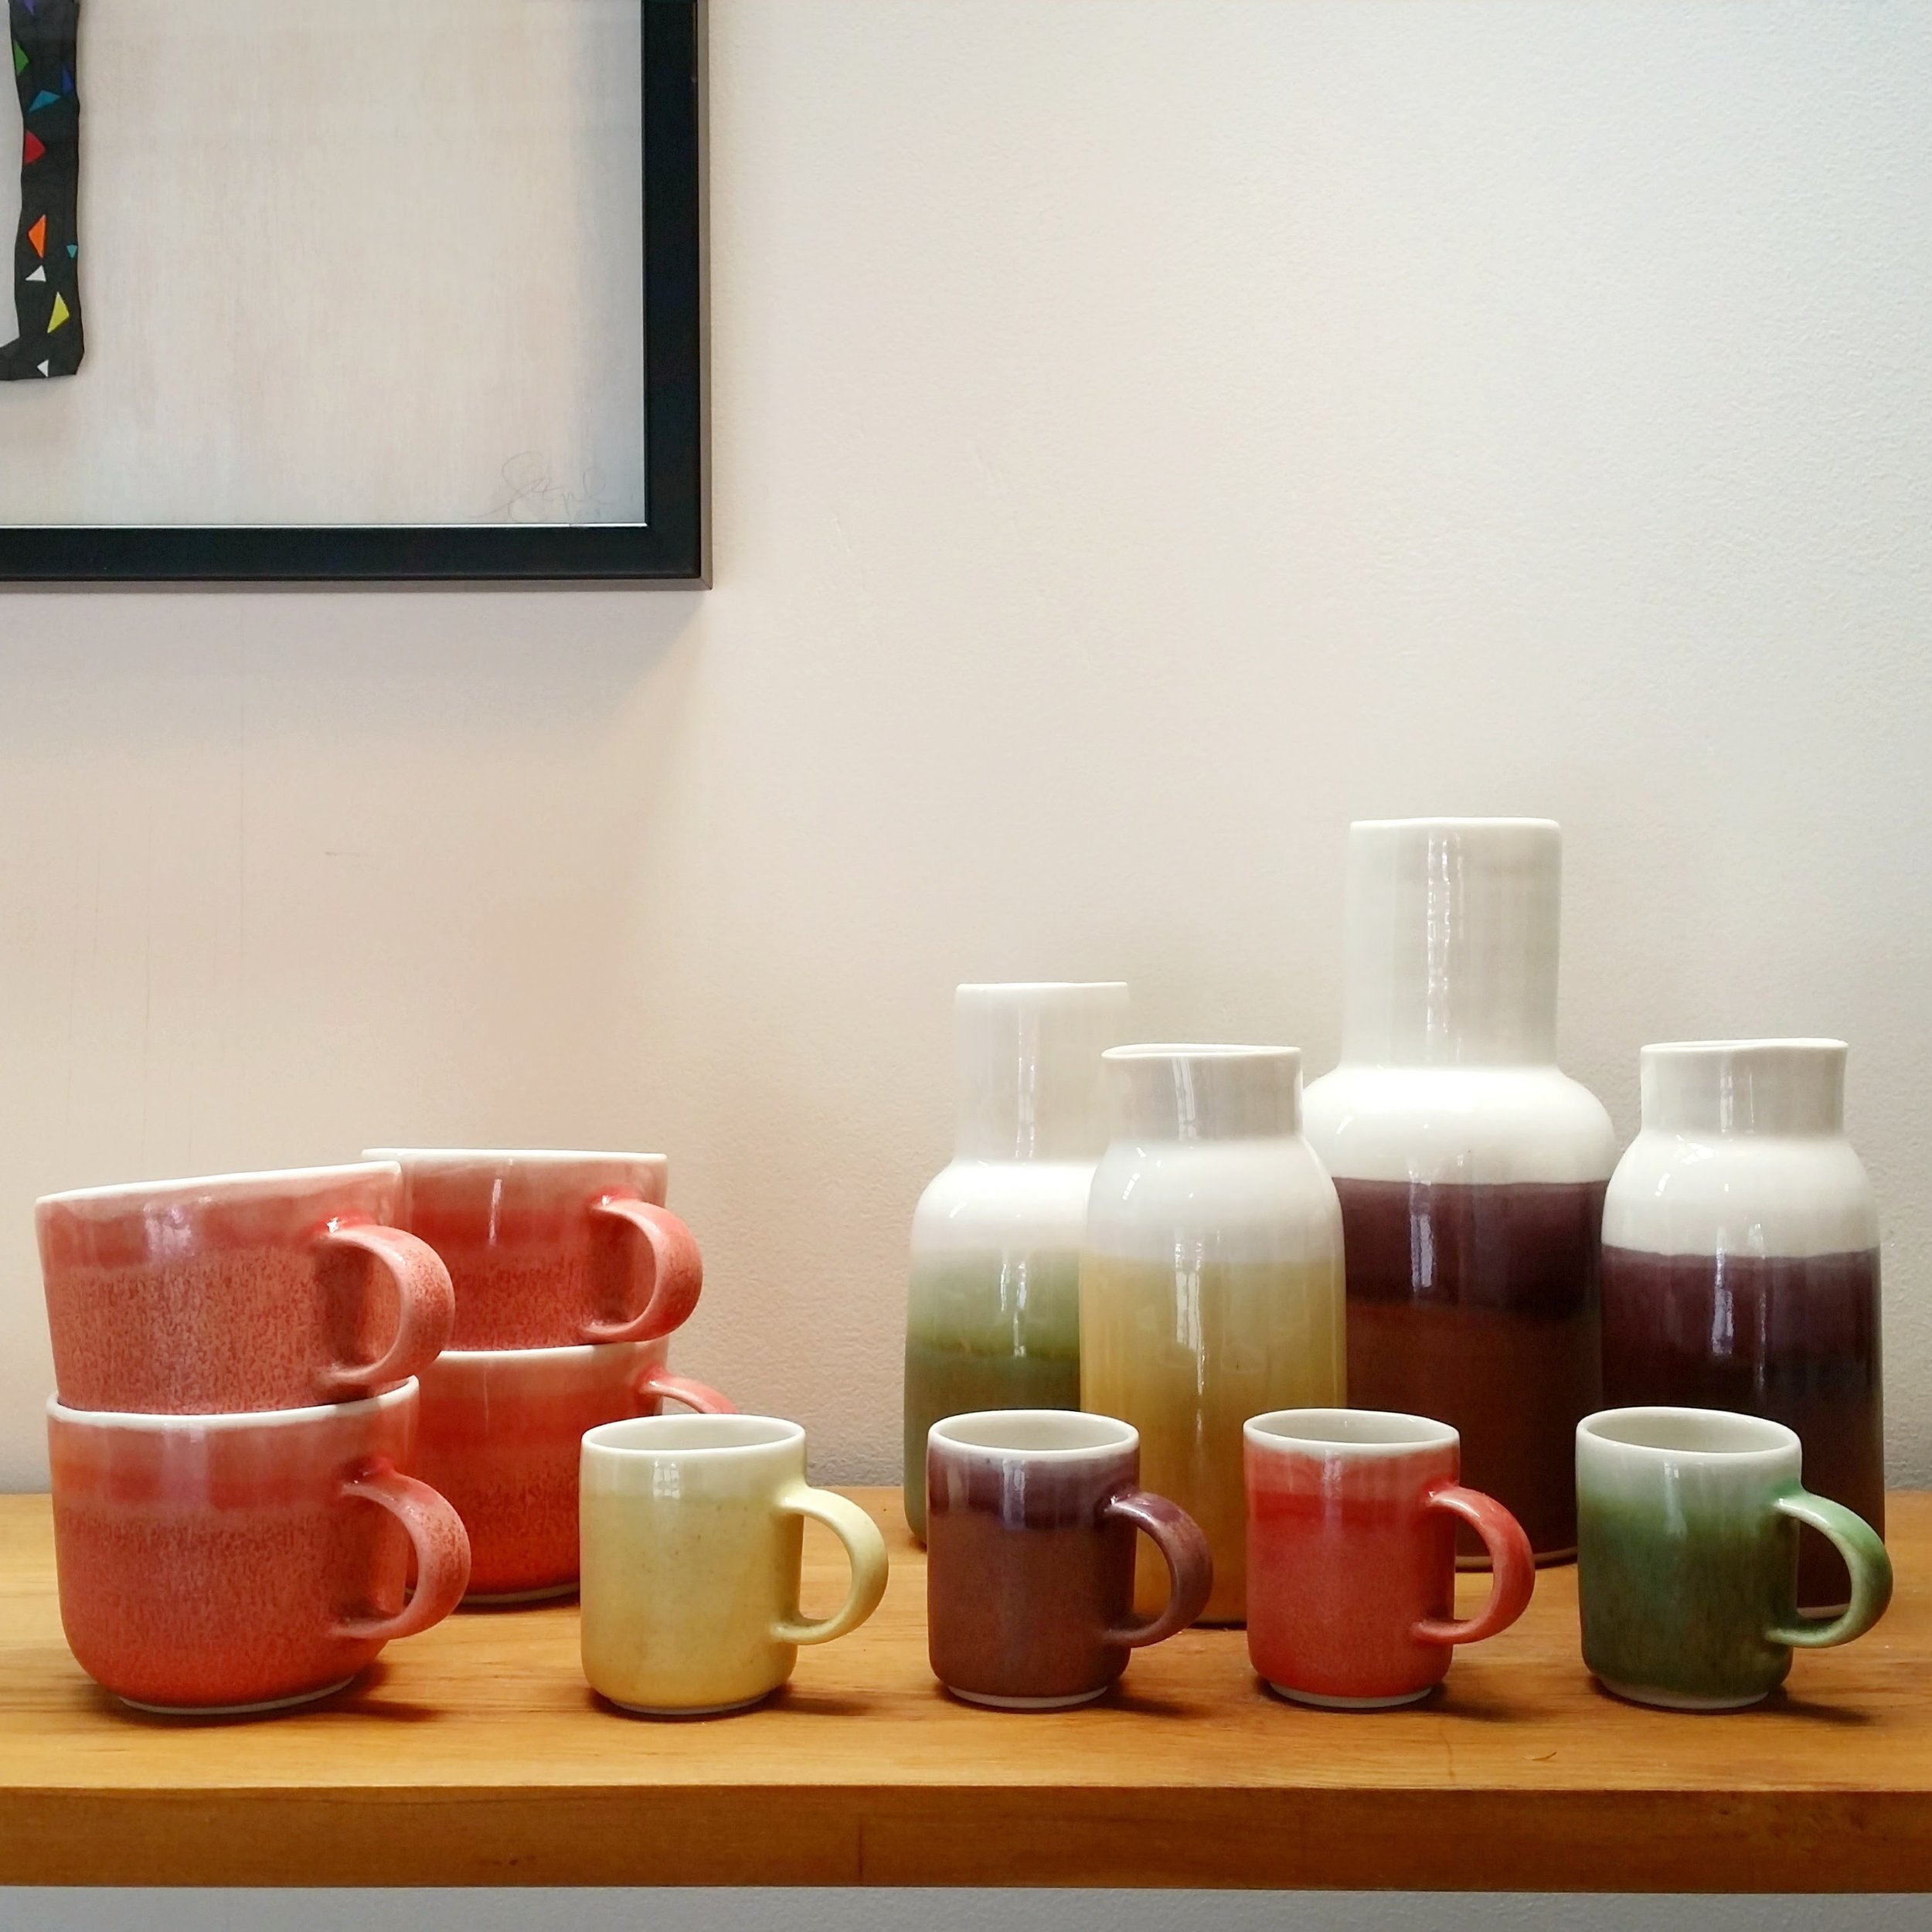 Three Cups of Tea - cups, egg cups and vases